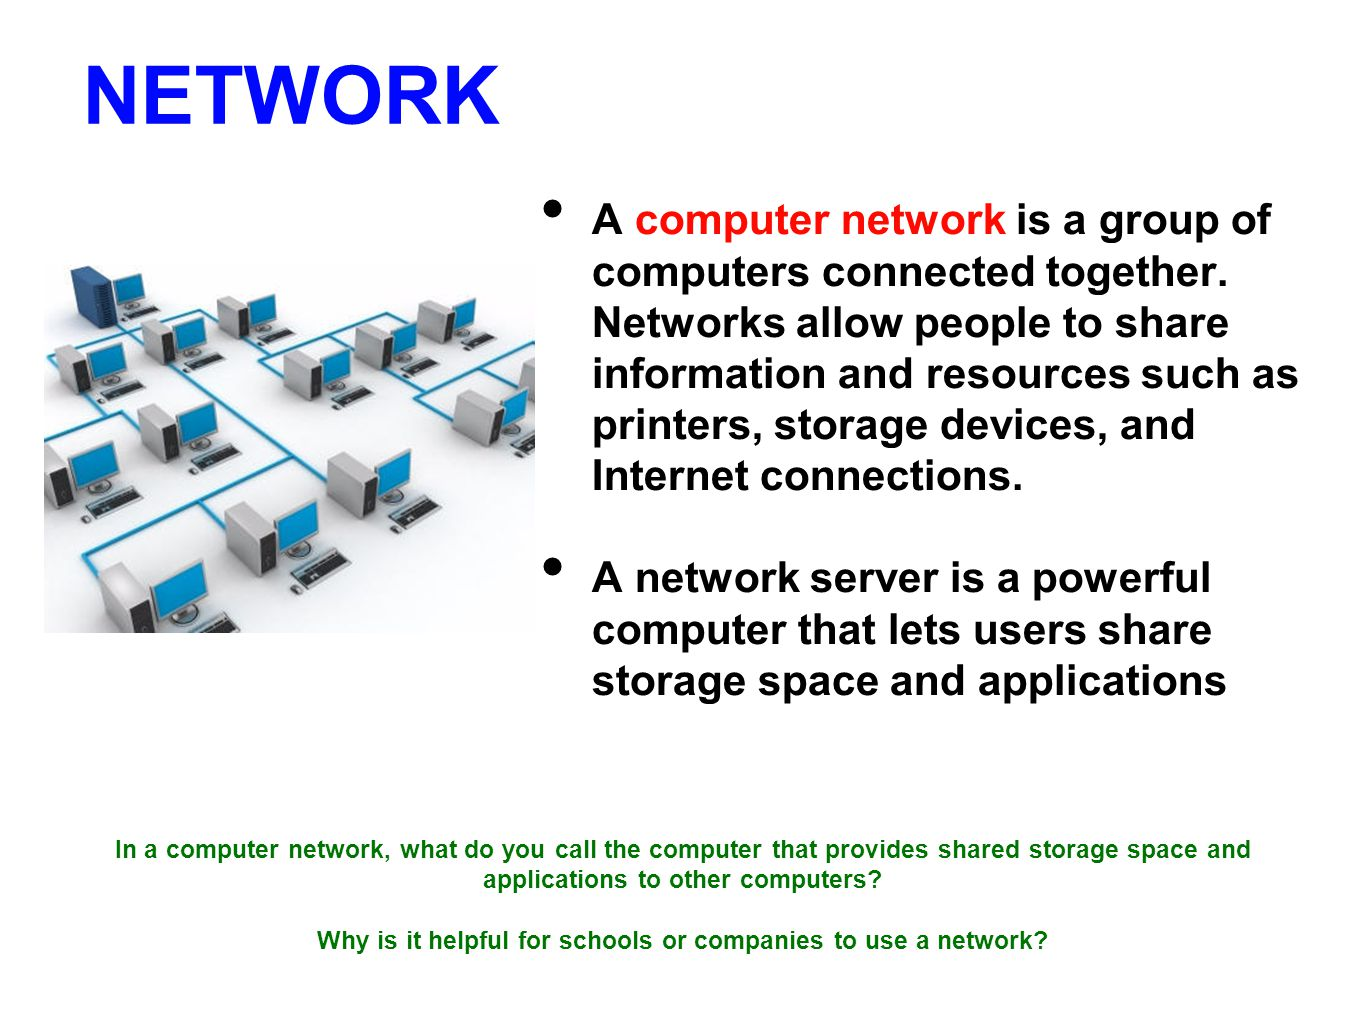 Why is it helpful for schools or companies to use a network